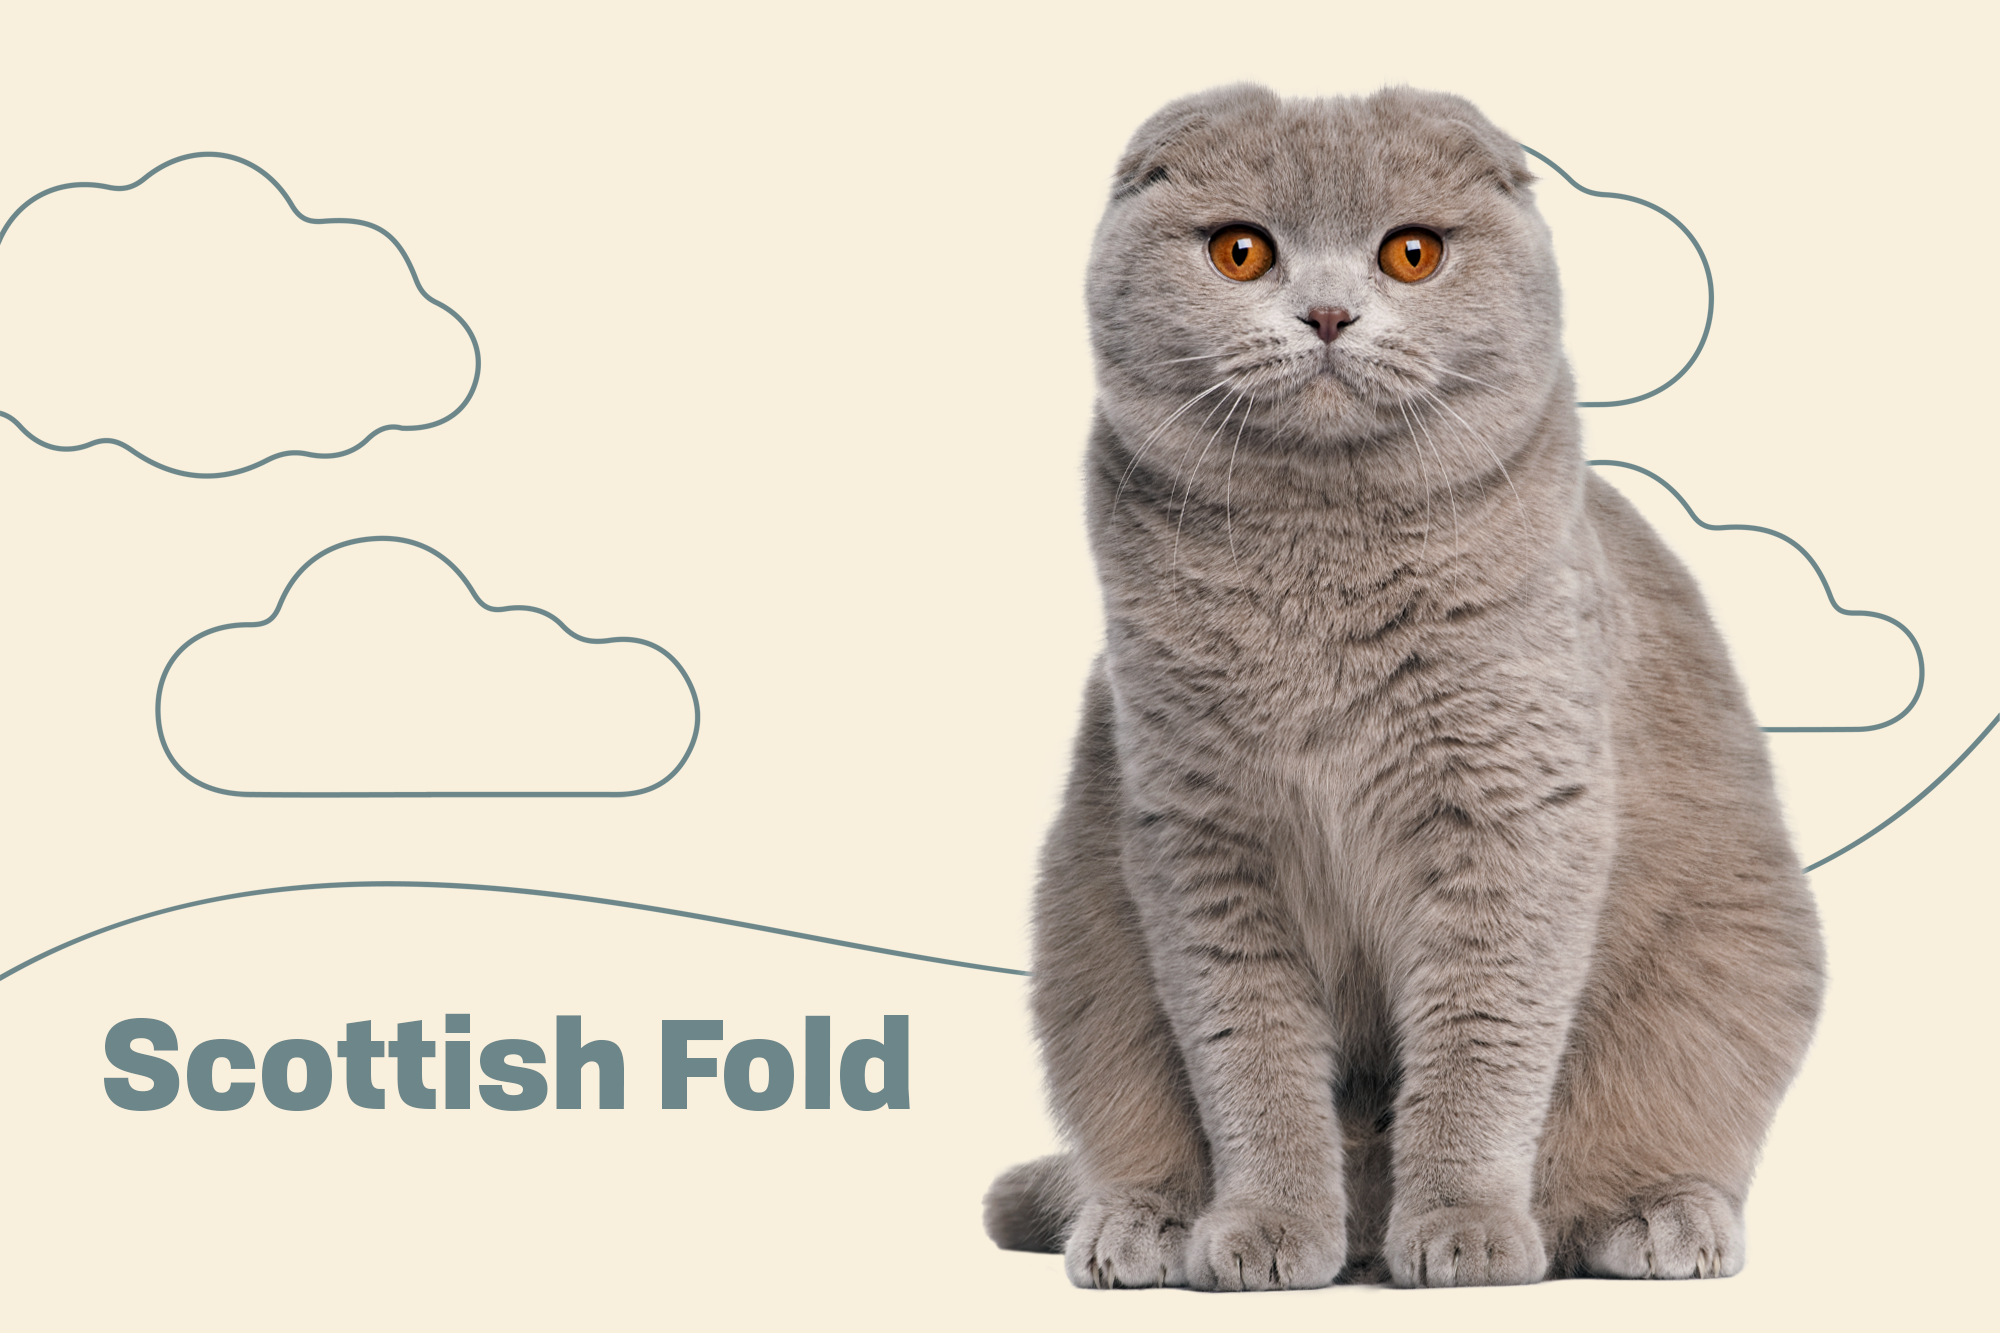 Scottish Fold Breed Photo